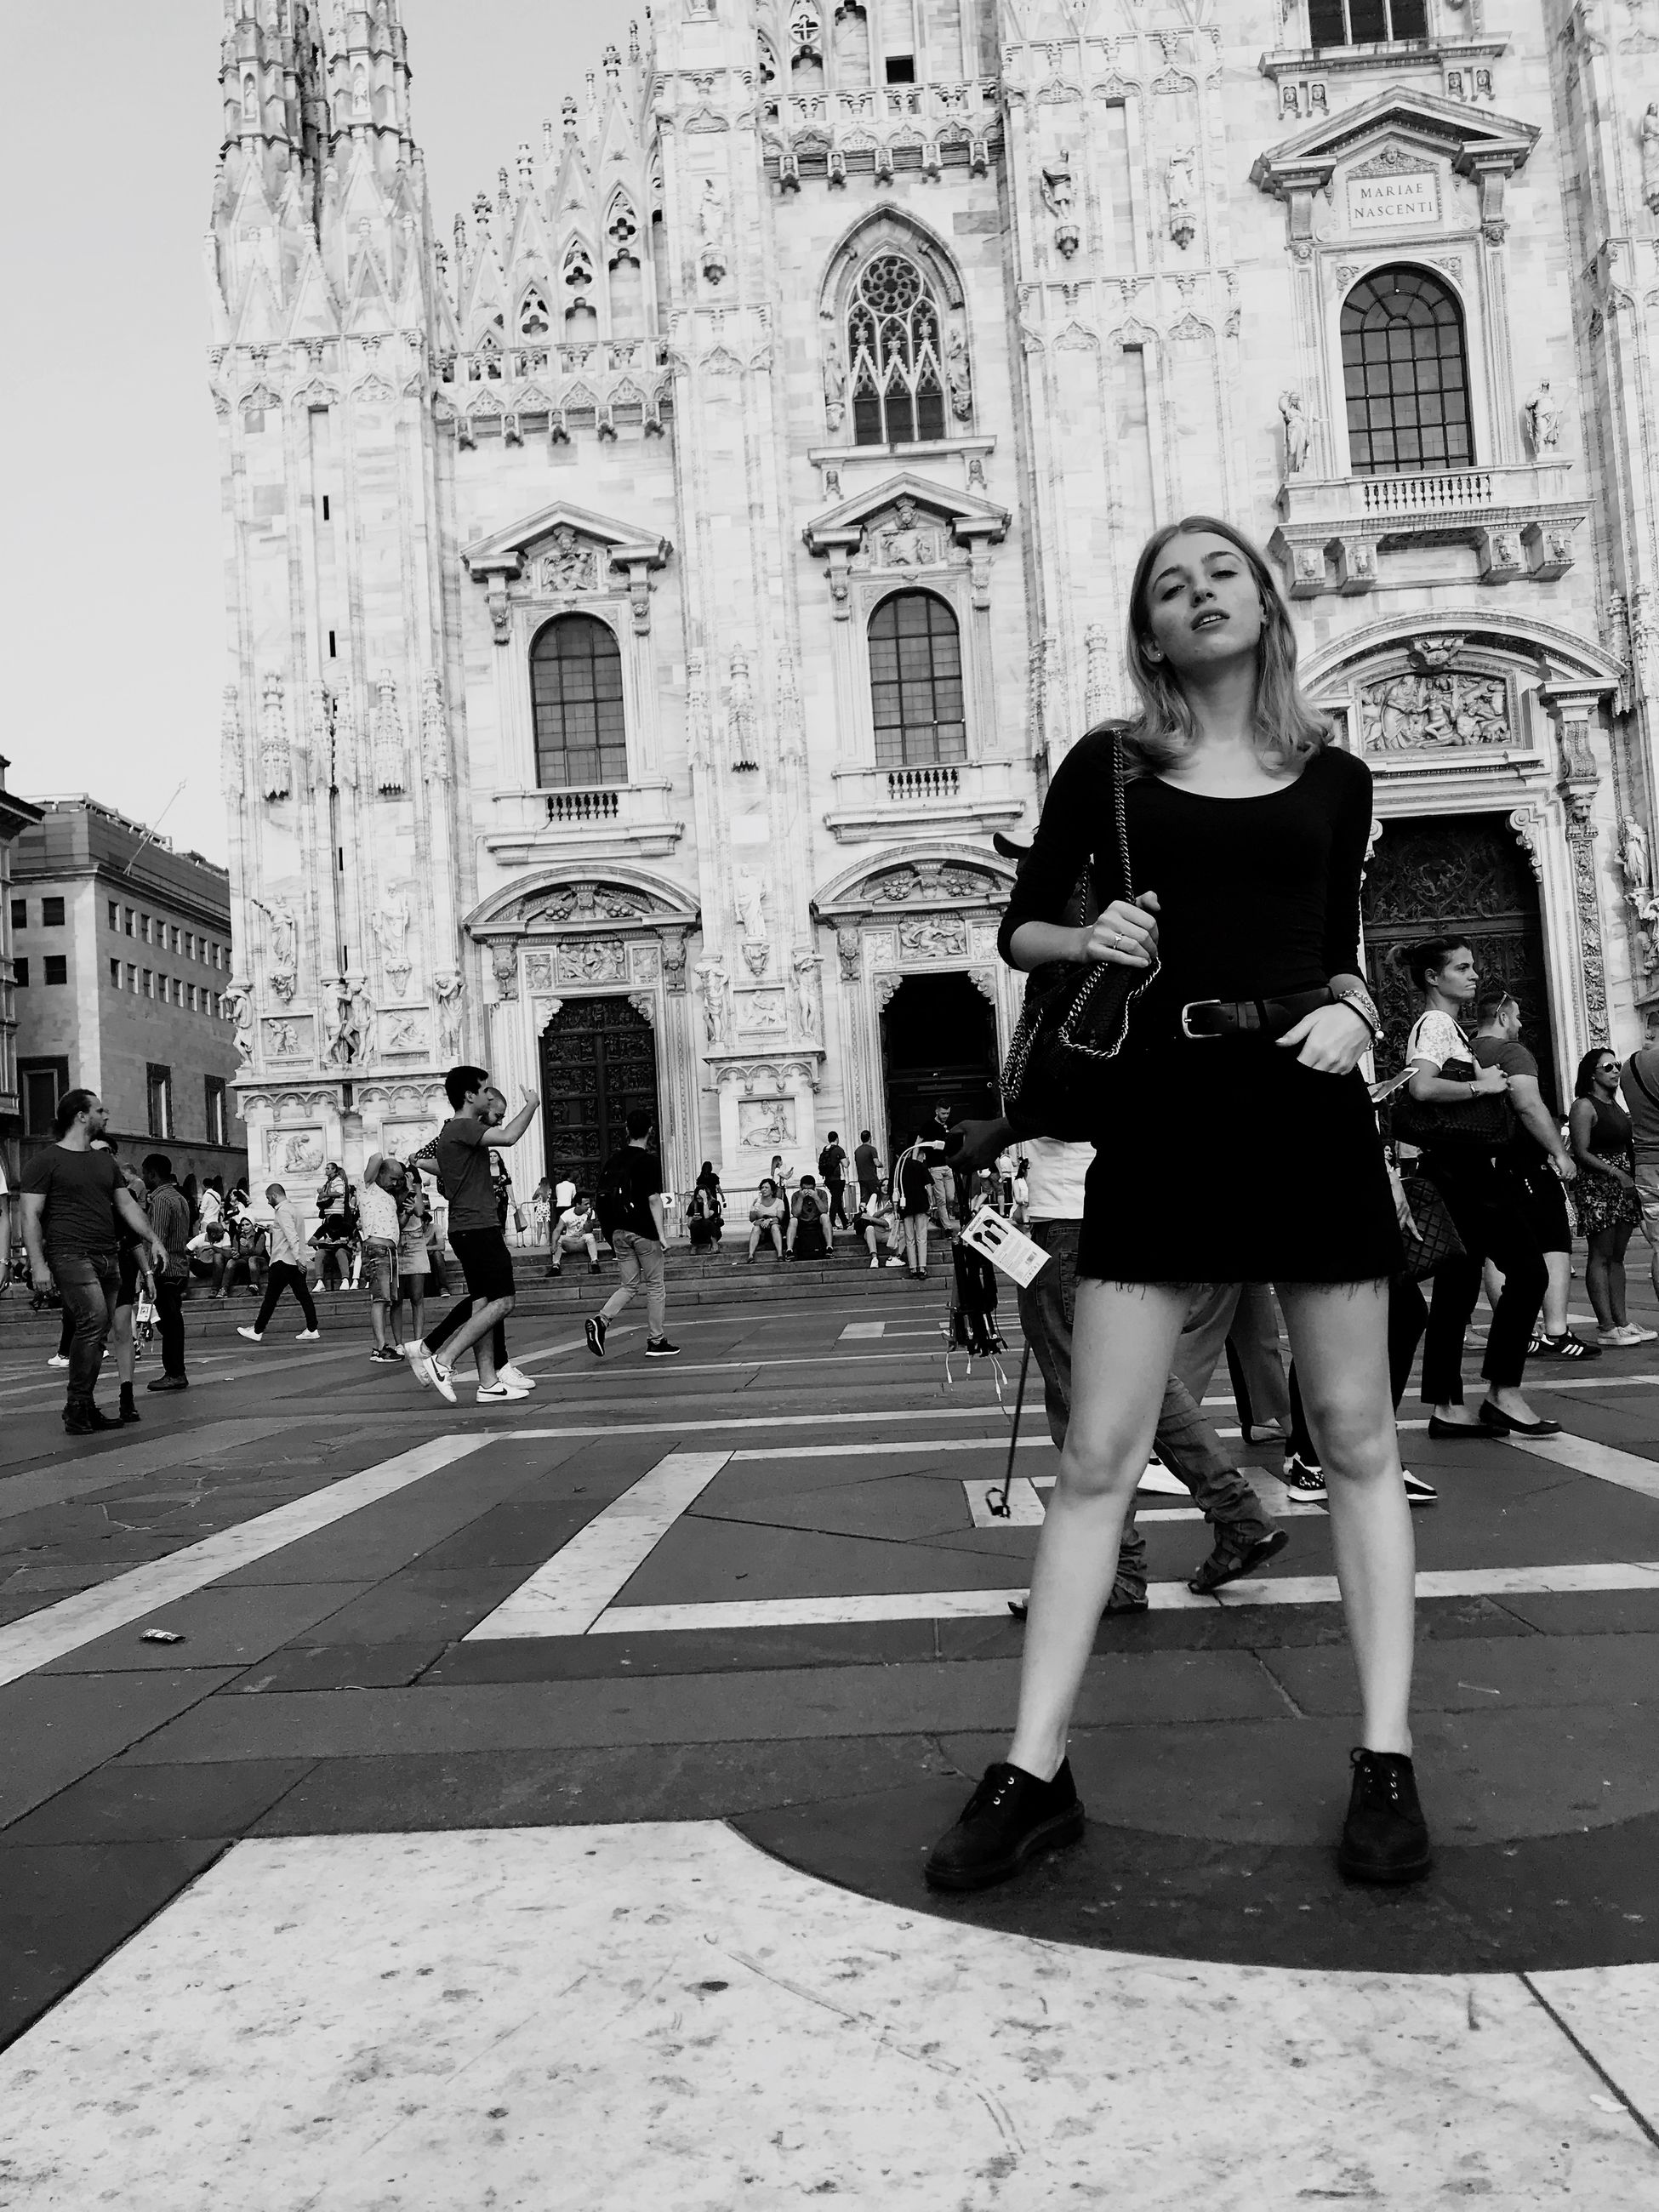 architecture, building exterior, built structure, real people, group of people, city, women, crowd, large group of people, adult, lifestyles, street, building, day, leisure activity, full length, place of worship, religion, men